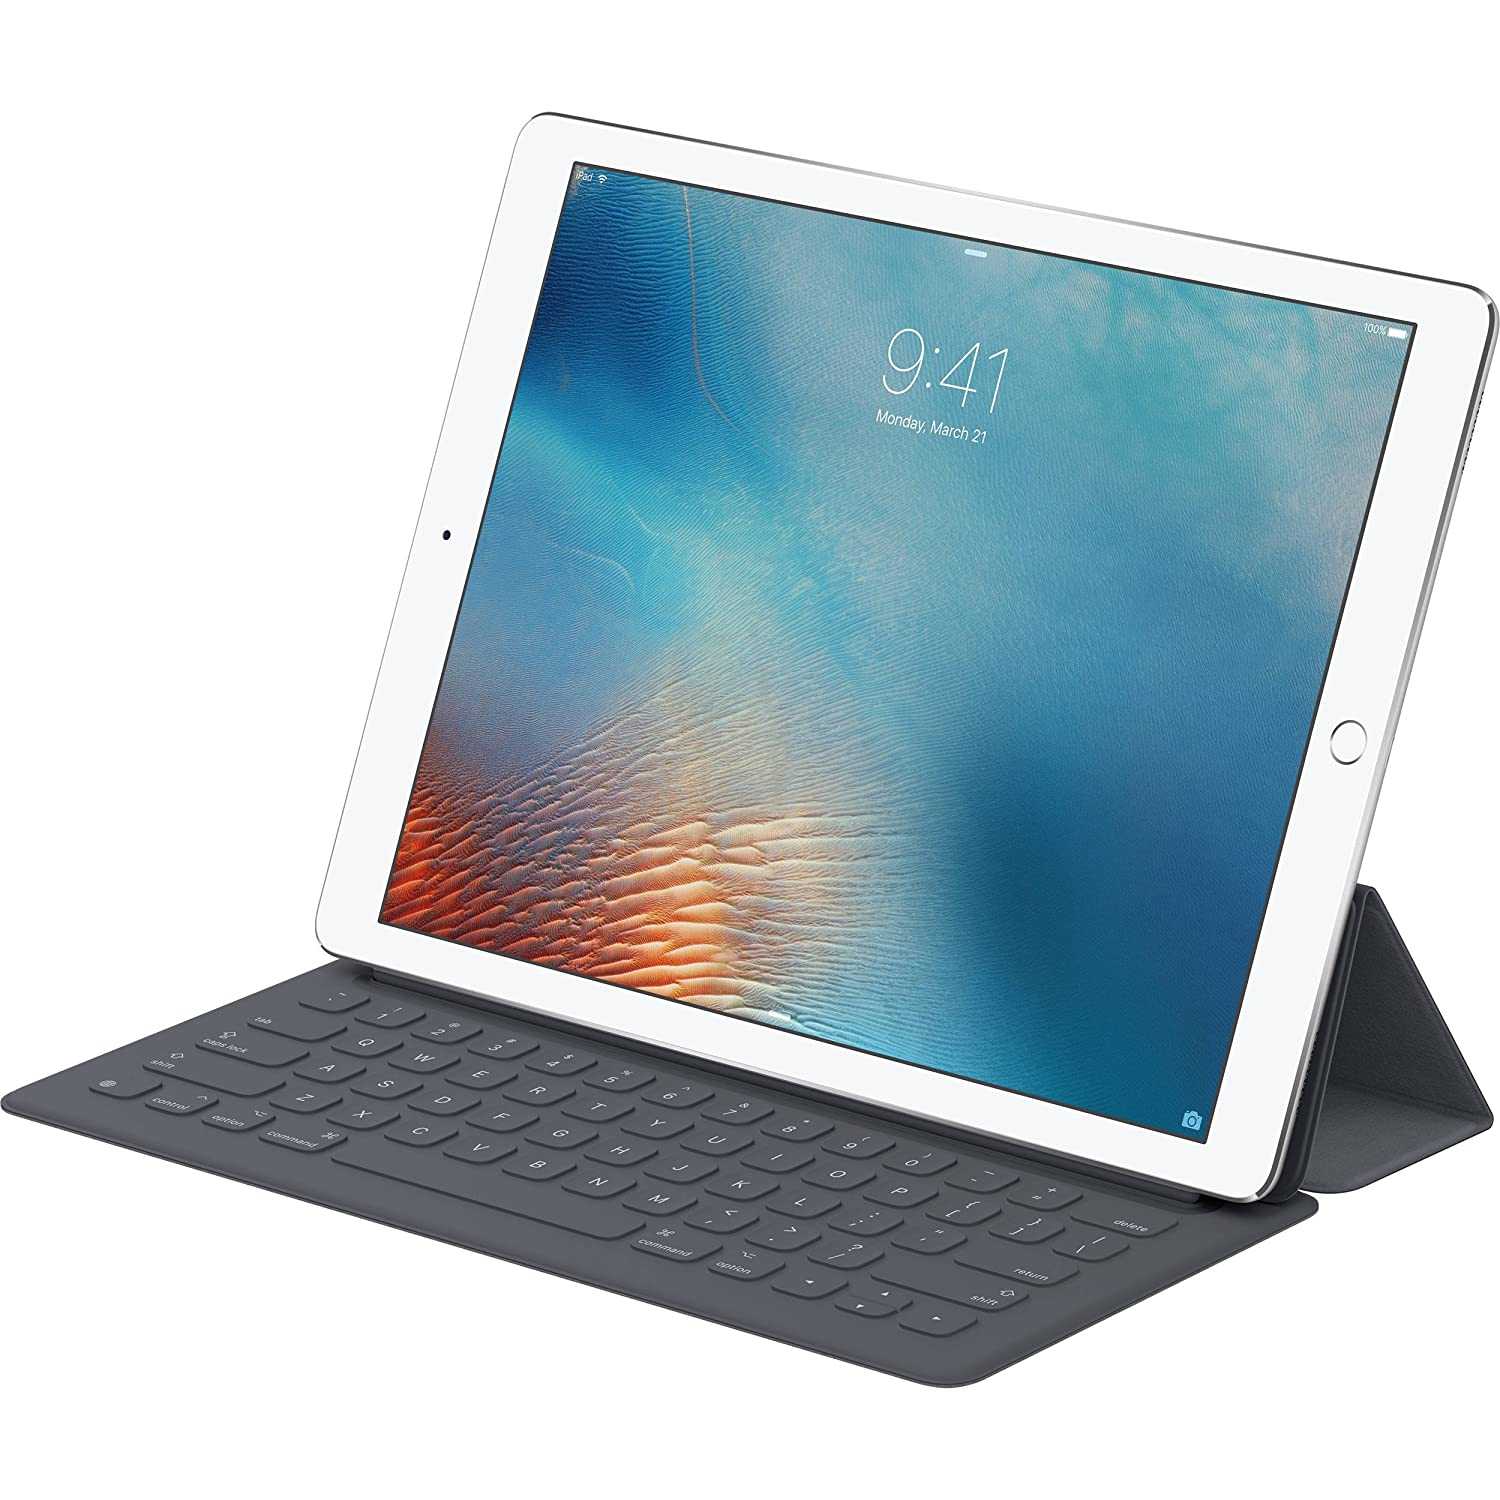 Apple Smart Keyboard For Ipad Pro 97 Inch 2016 Model Conductive Pen Gadgets Other Electronics Ebay Cell Phones Accessories